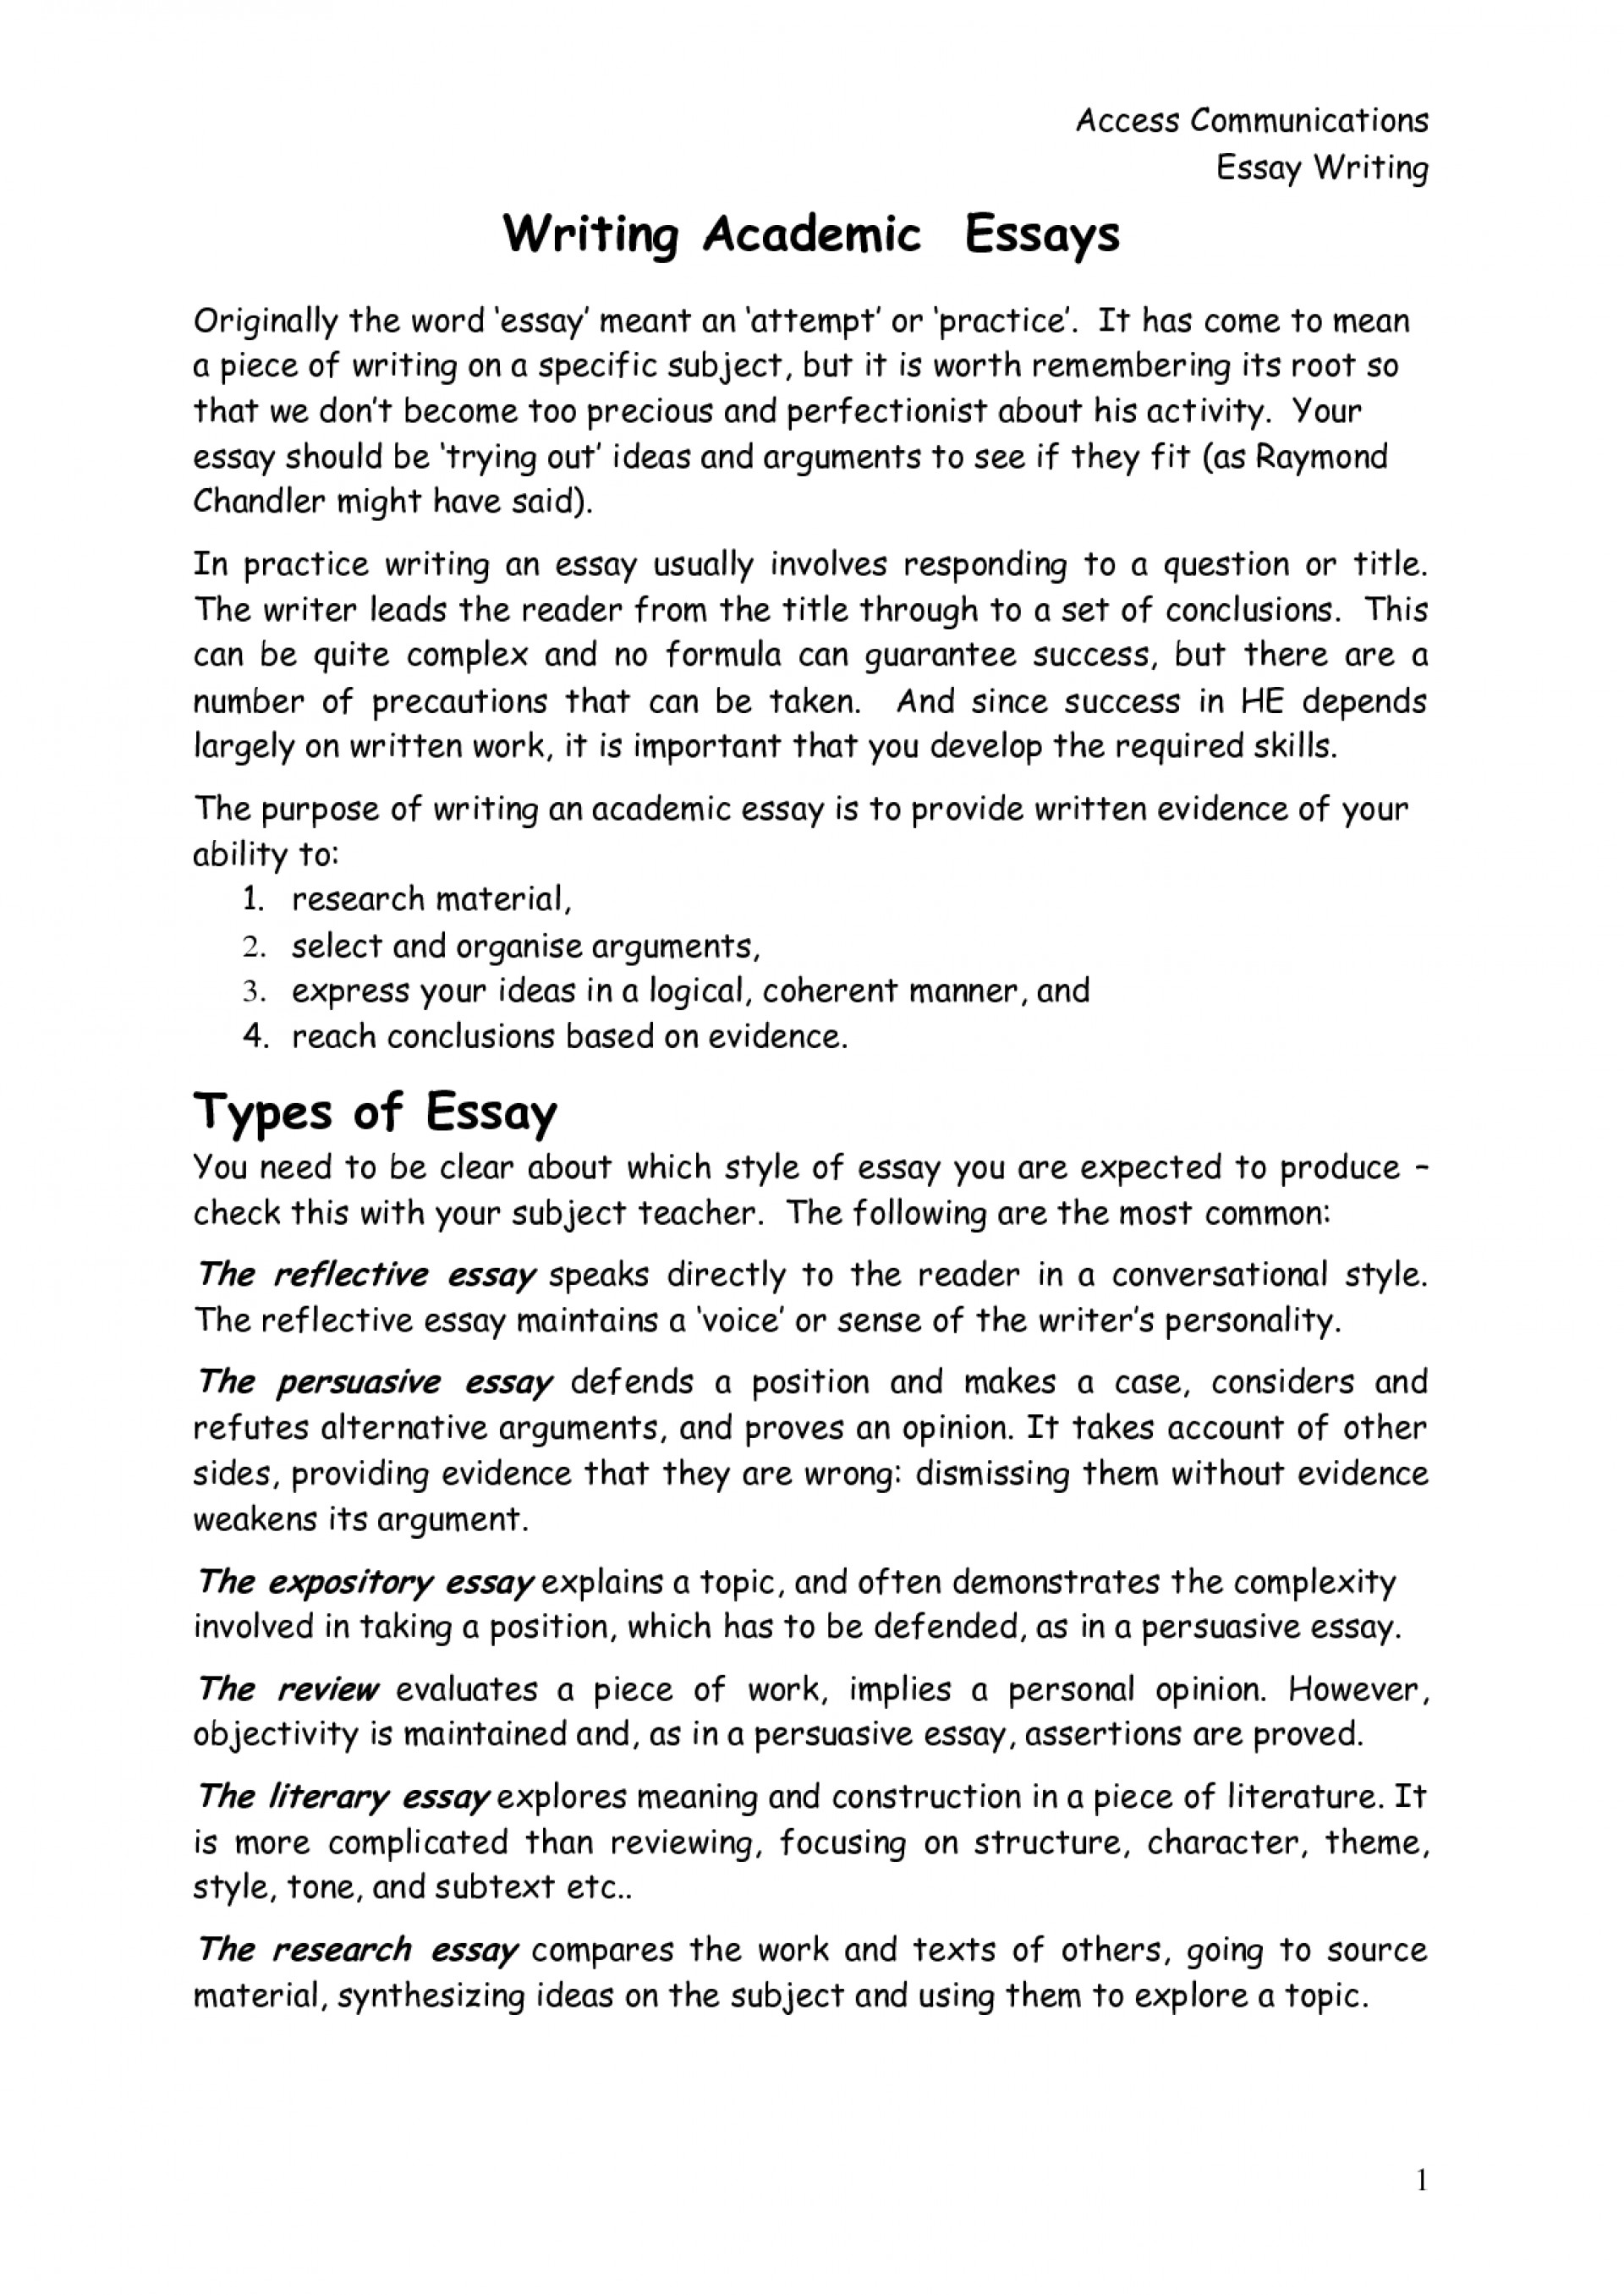 009 Reflective Essay Introduction Example Unbelievable Academic Writing English 1920